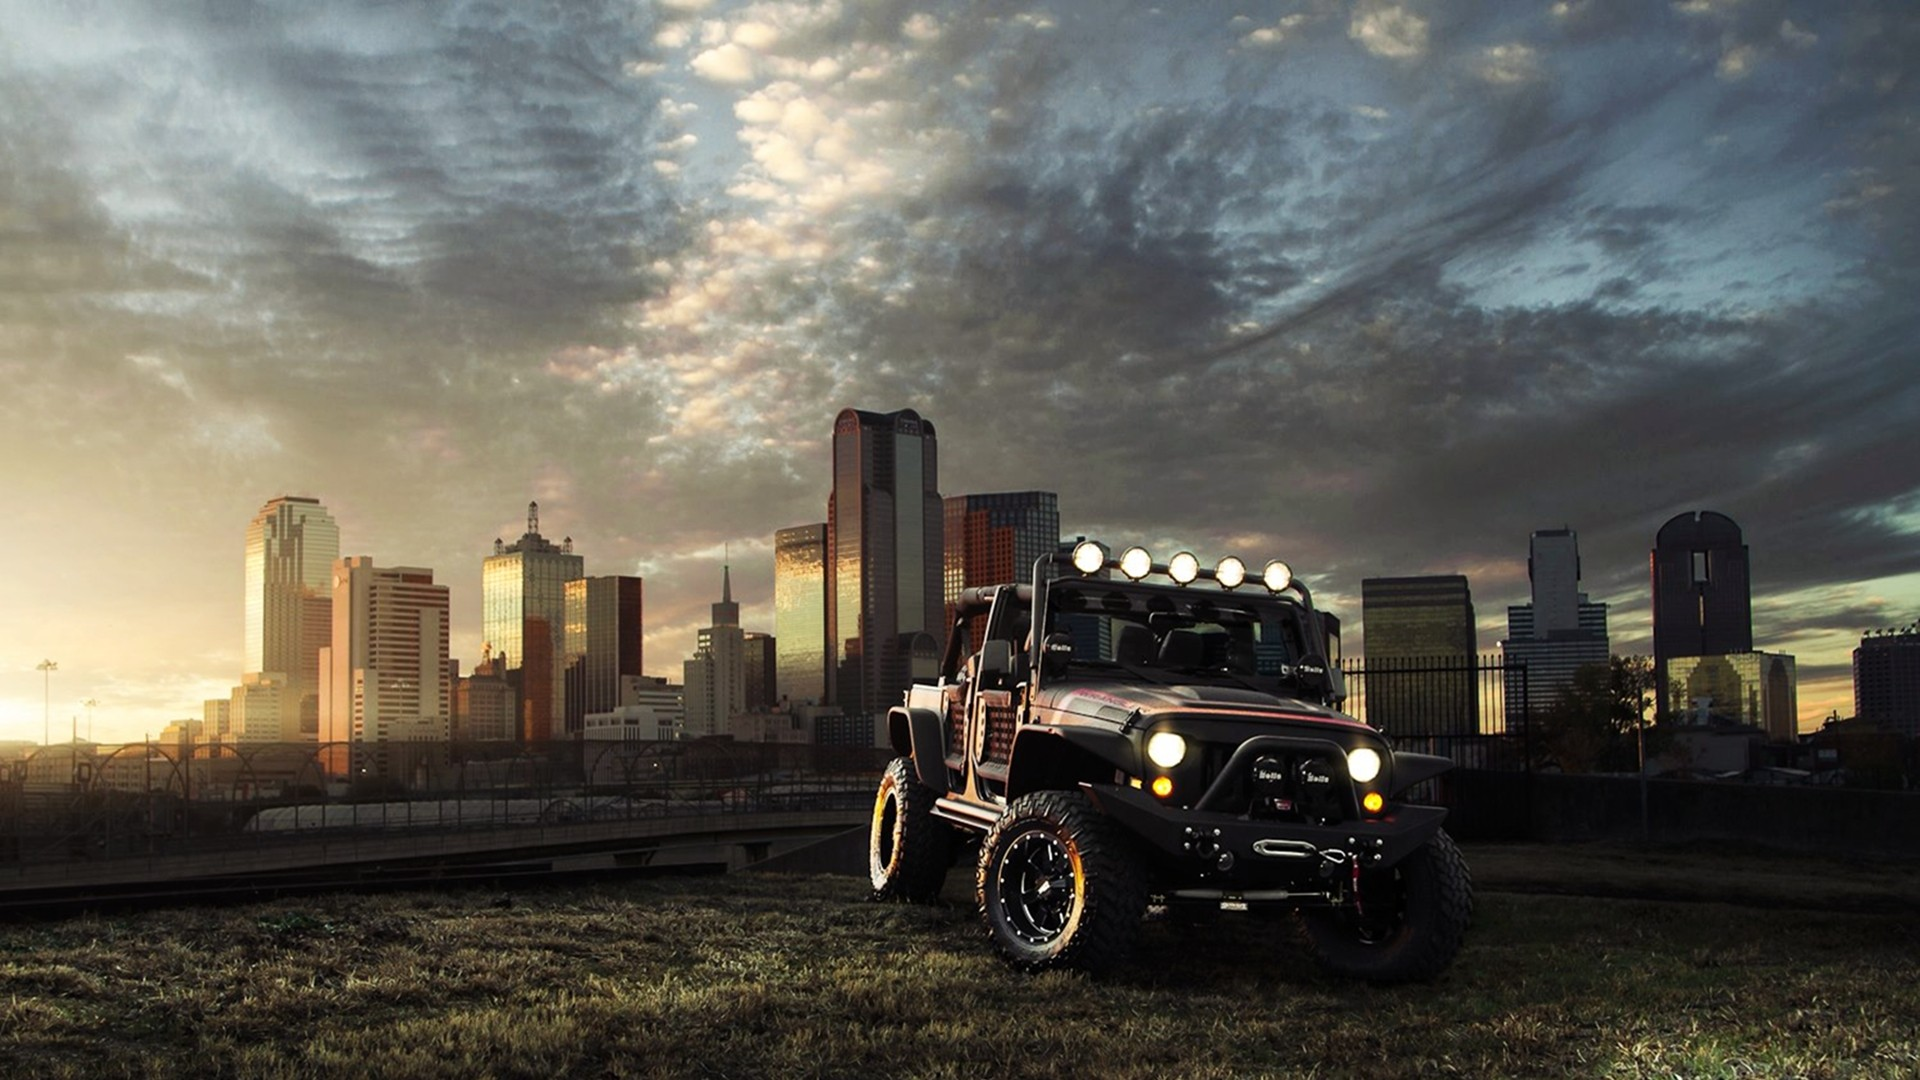 Jeep Wrangler   27 Amazing Desktop Background Wallpapers Collection 1920x1080